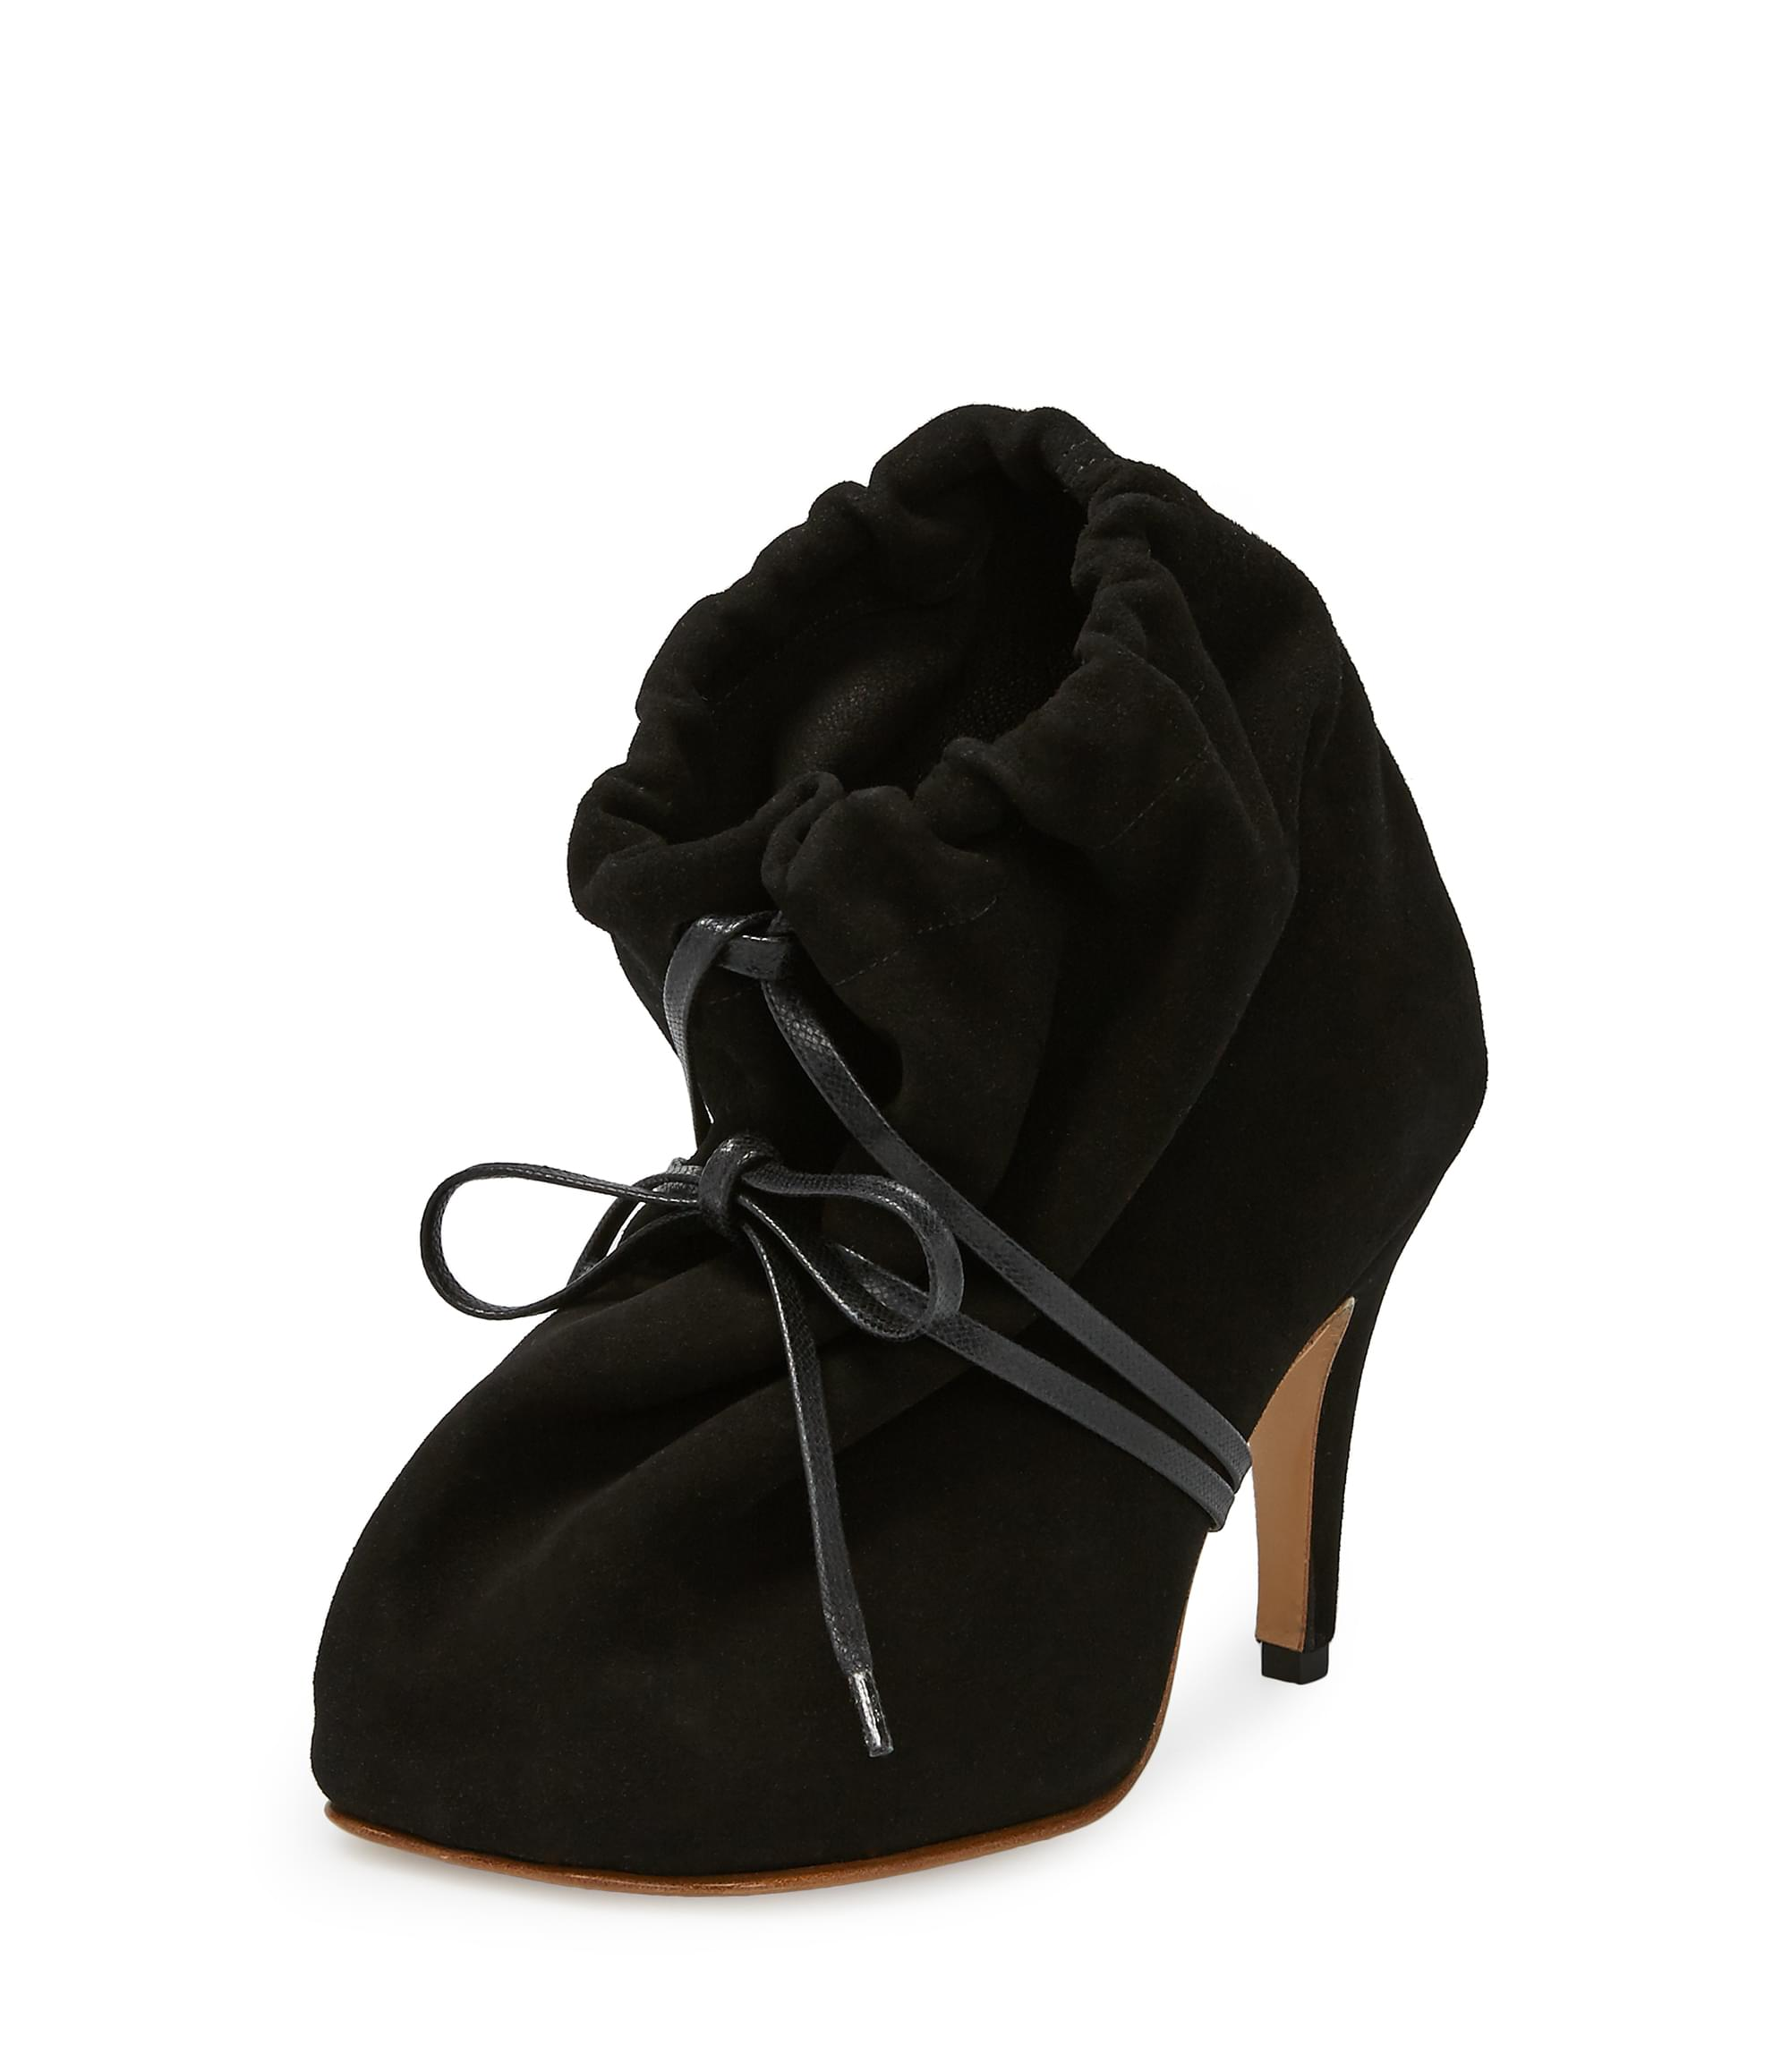 Vivienne Westwood Black Animal Sack Stiletto